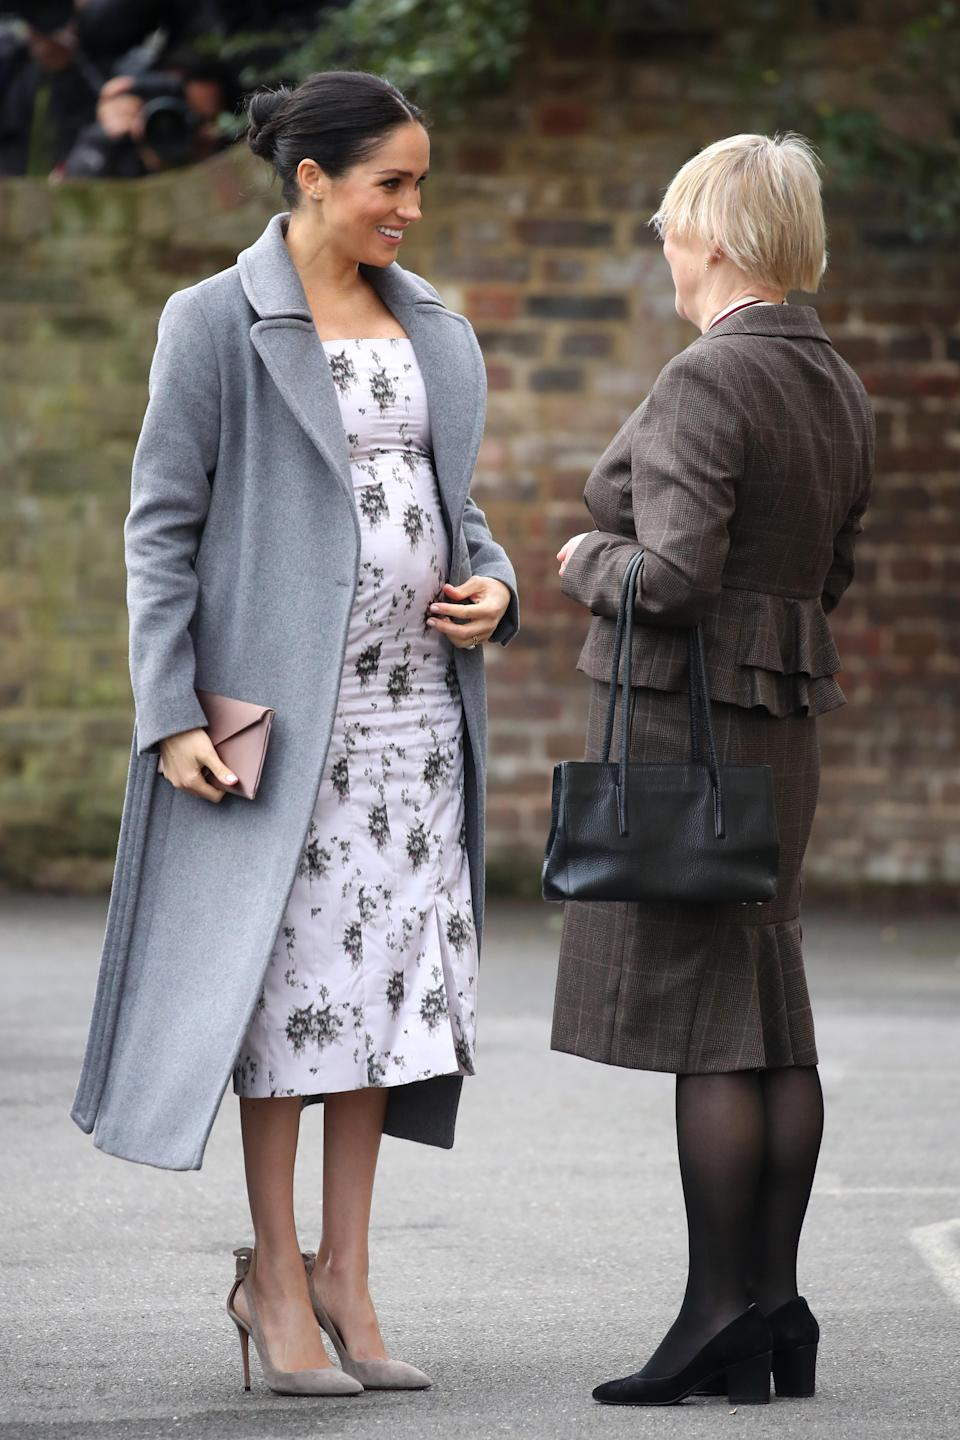 <p>For a trip to Brinsworth House, Meghan wore a £435 Soia and Kyo coat over a £834 floral print midi dress by Brock Collection. She finished the outfit with her go-to £510 Aquazzura 'Deneuve' suede pumps and a £205 Wilbur & Gussie silk oyster clutch bag. She also wore her £1,350 Maison Birks Pétale yellow gold and diamond stud earrings. <em>[Photo: Getty]</em> </p>